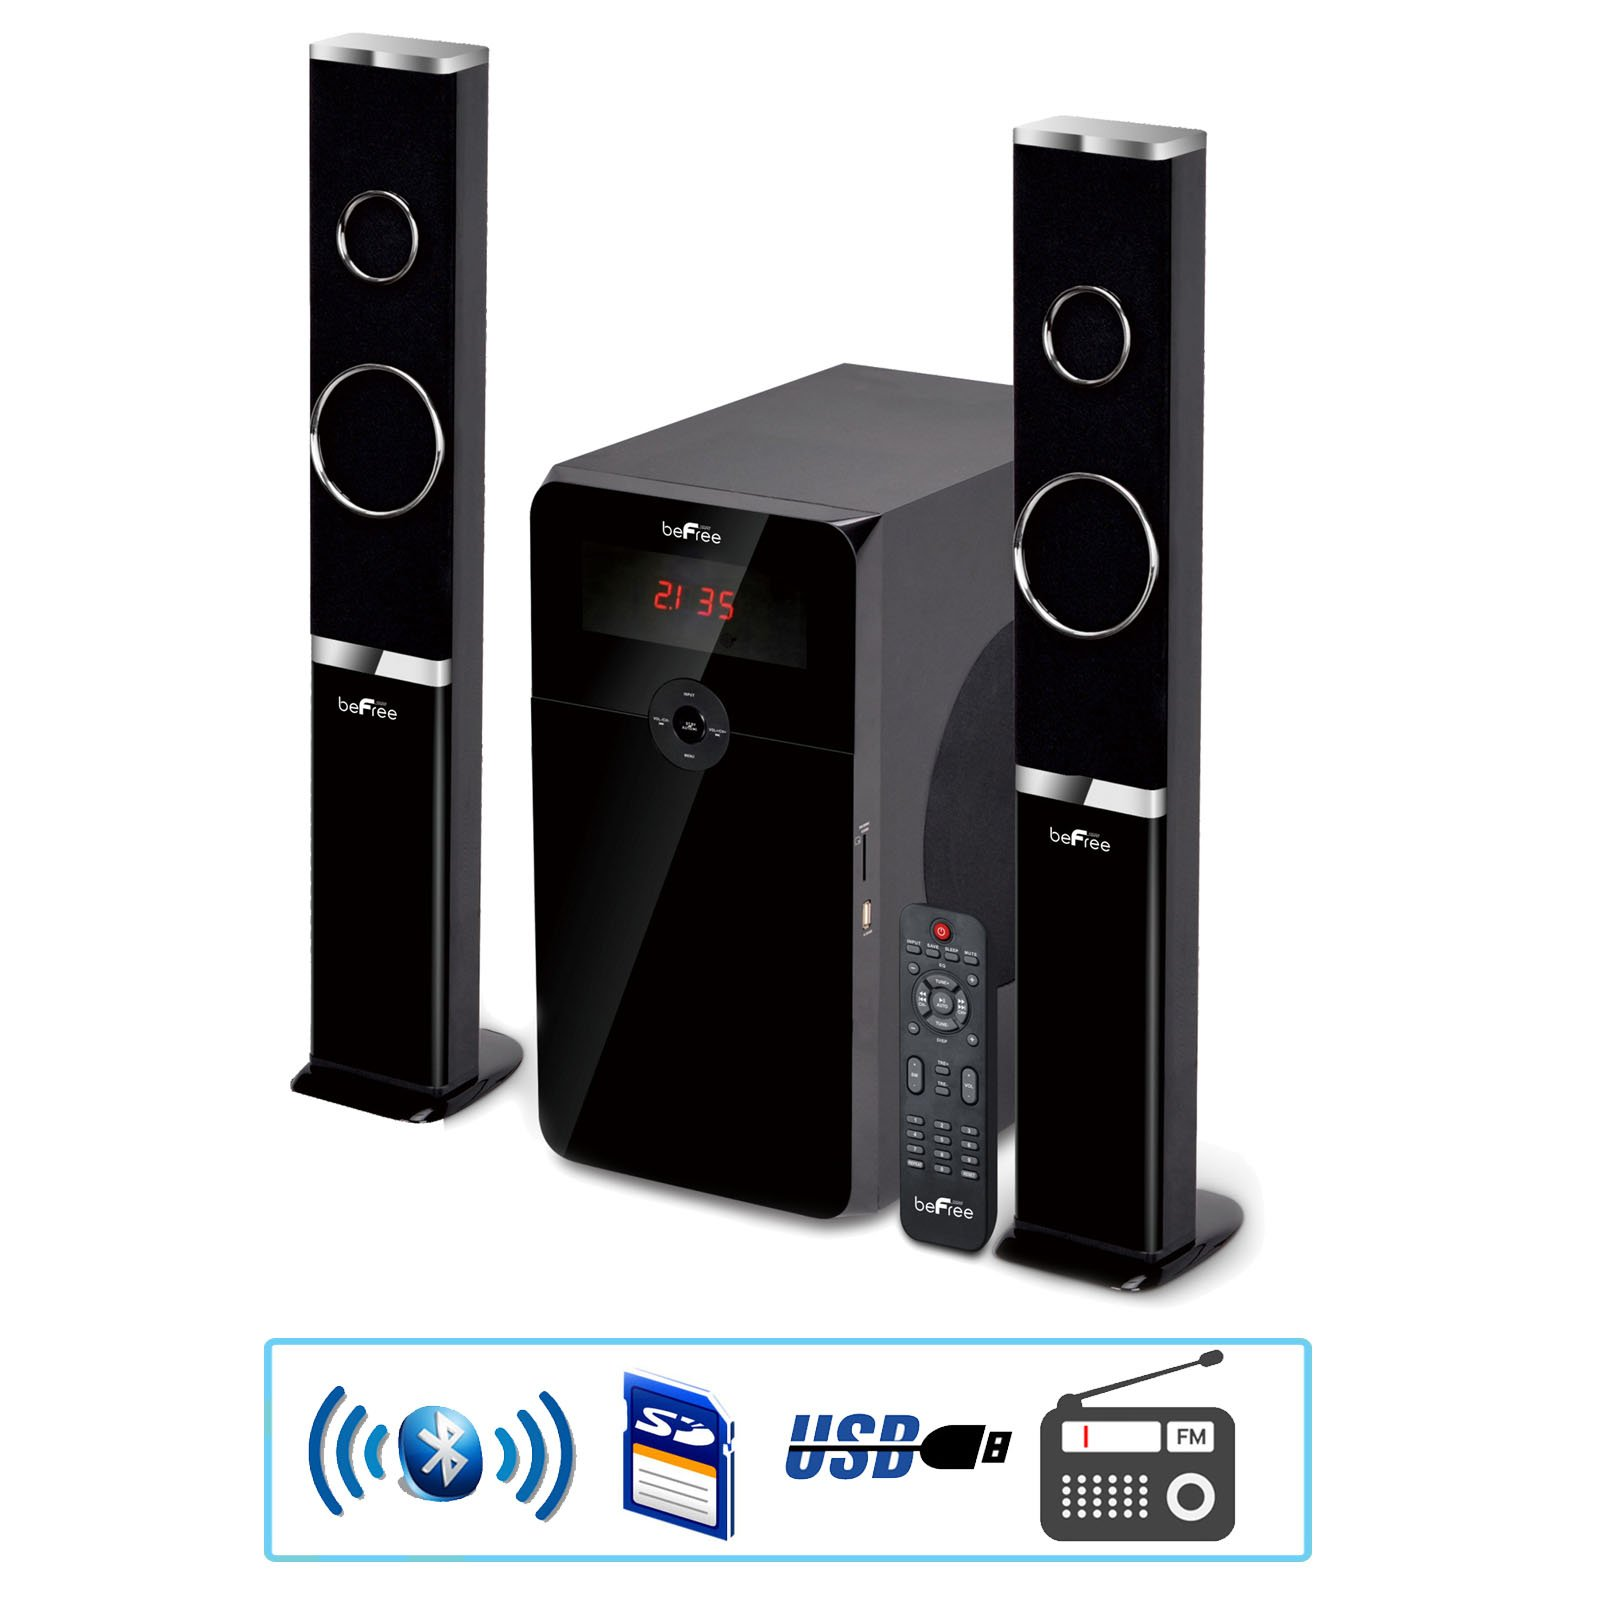 BEFREE SOUND B0165beFree Sound 2.1 Channel Multimedia Wired Speaker Shelf System with SD and USB Input